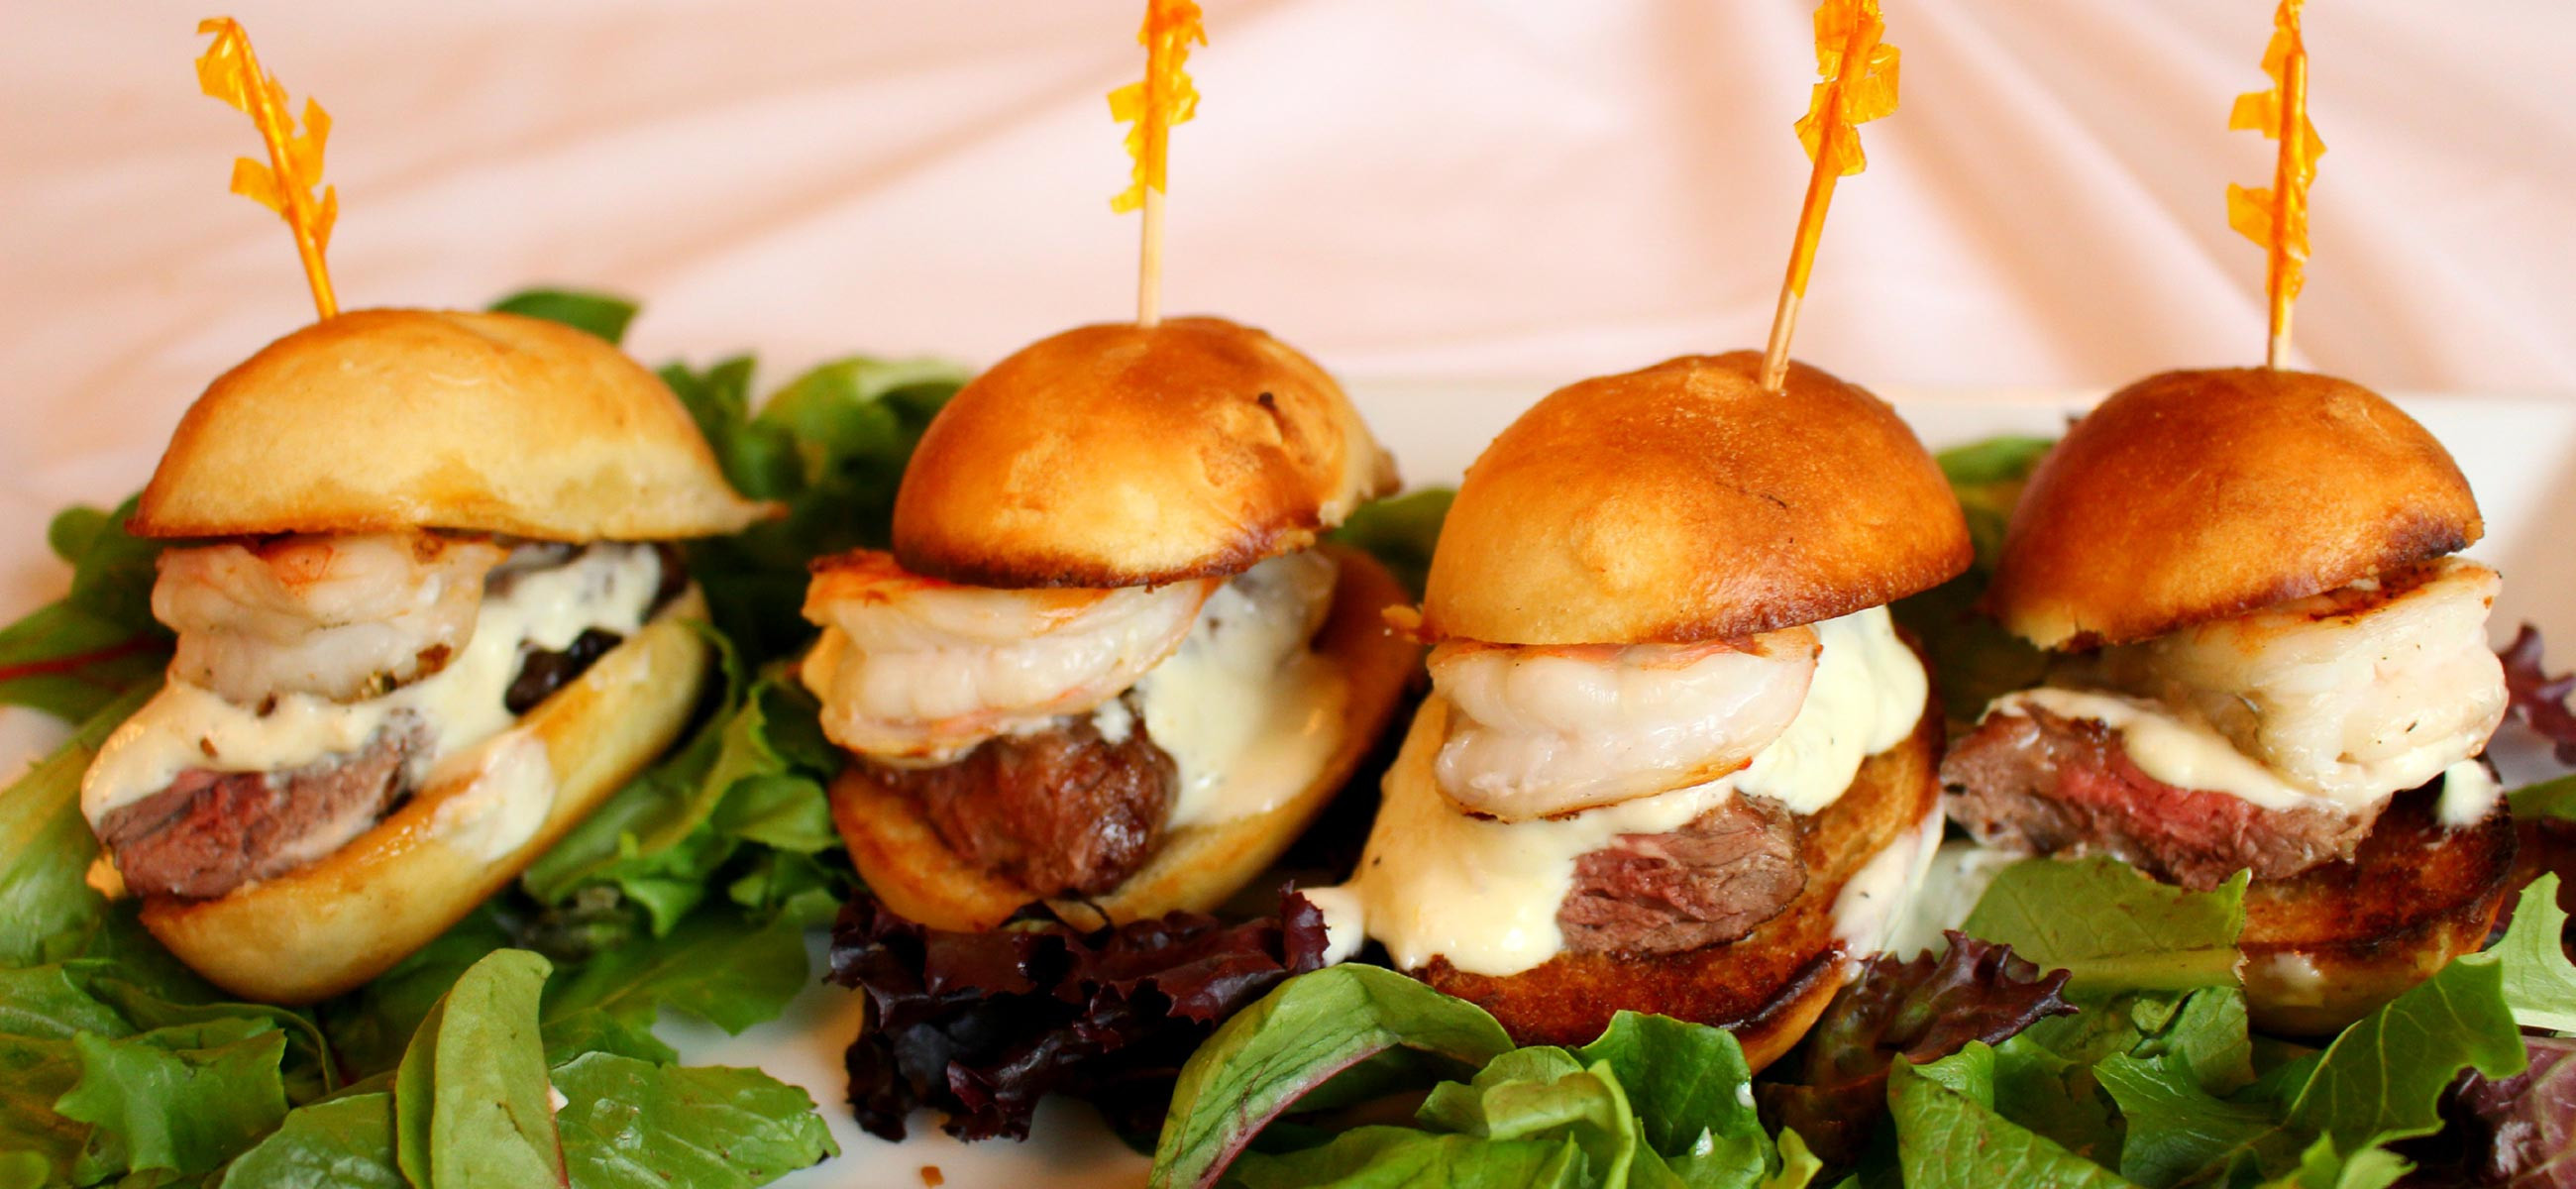 lunch restaurant - sliders